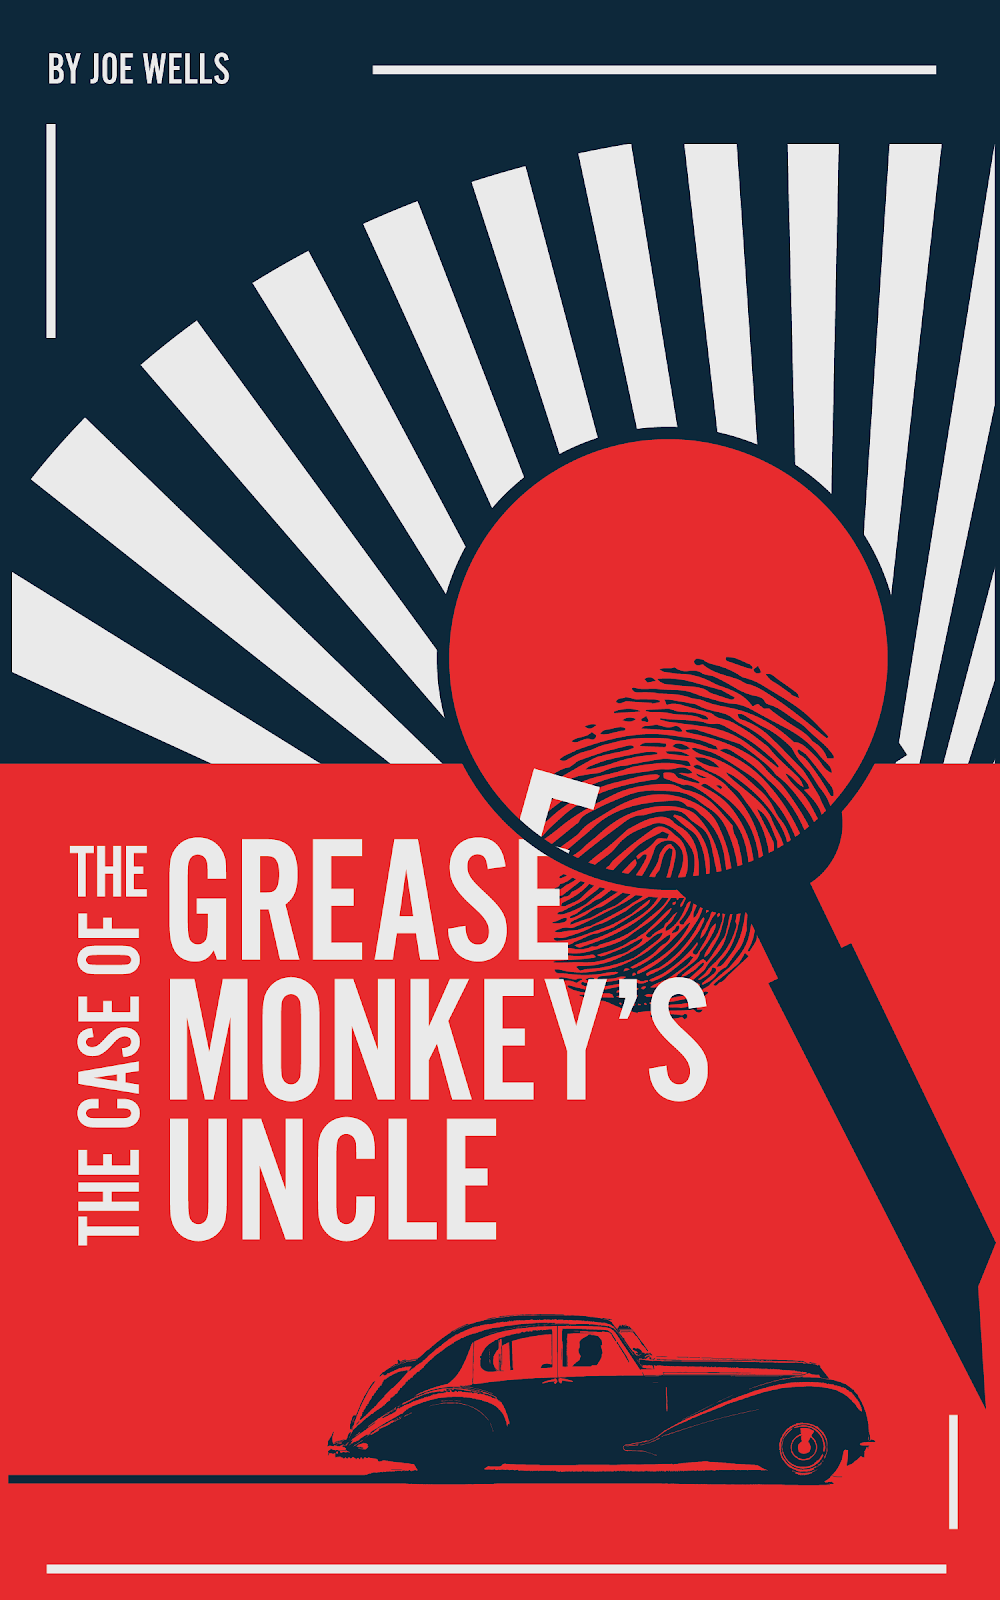 The Case of the Grease Monkey's Uncle.